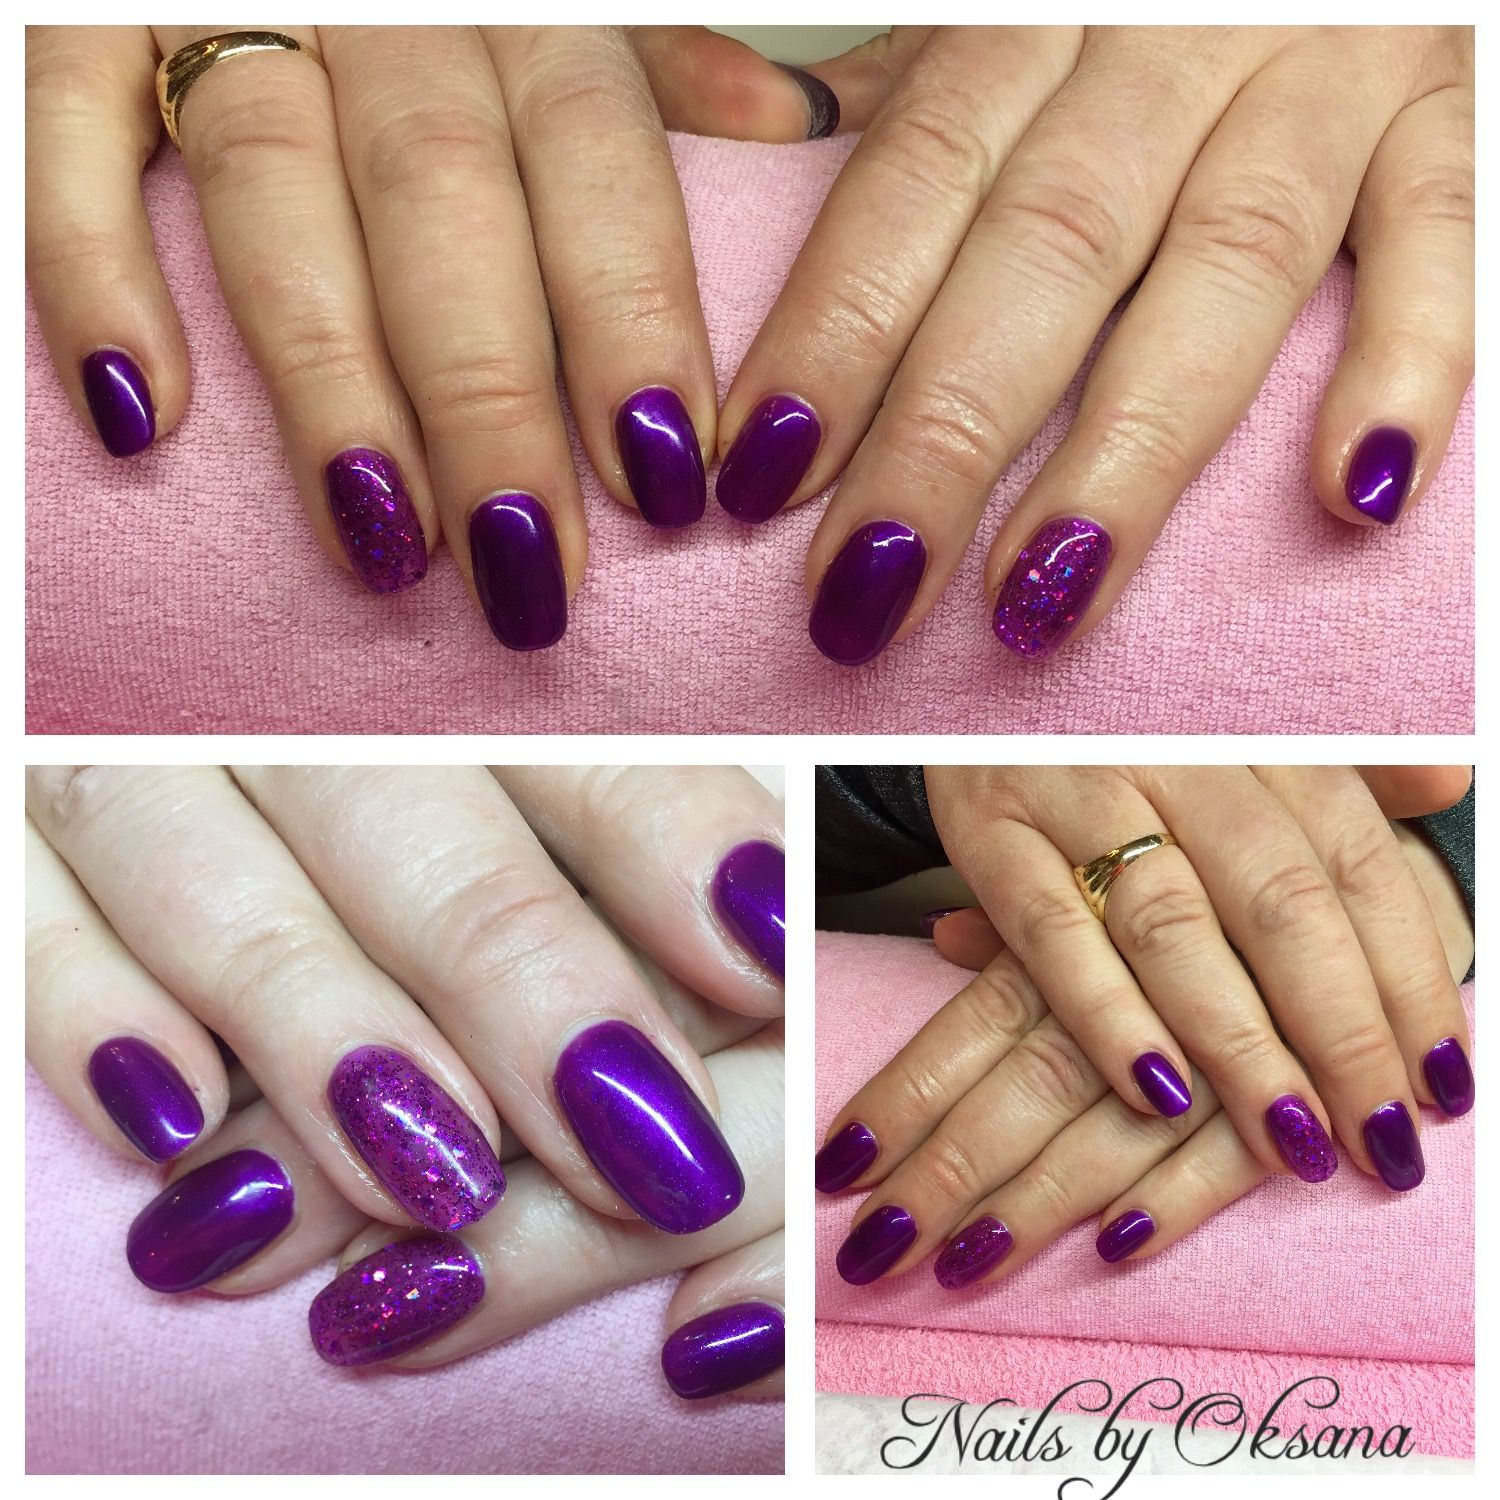 Gel nail extensions ( on forms ) for Ciara\'s birthday | My Nail ...